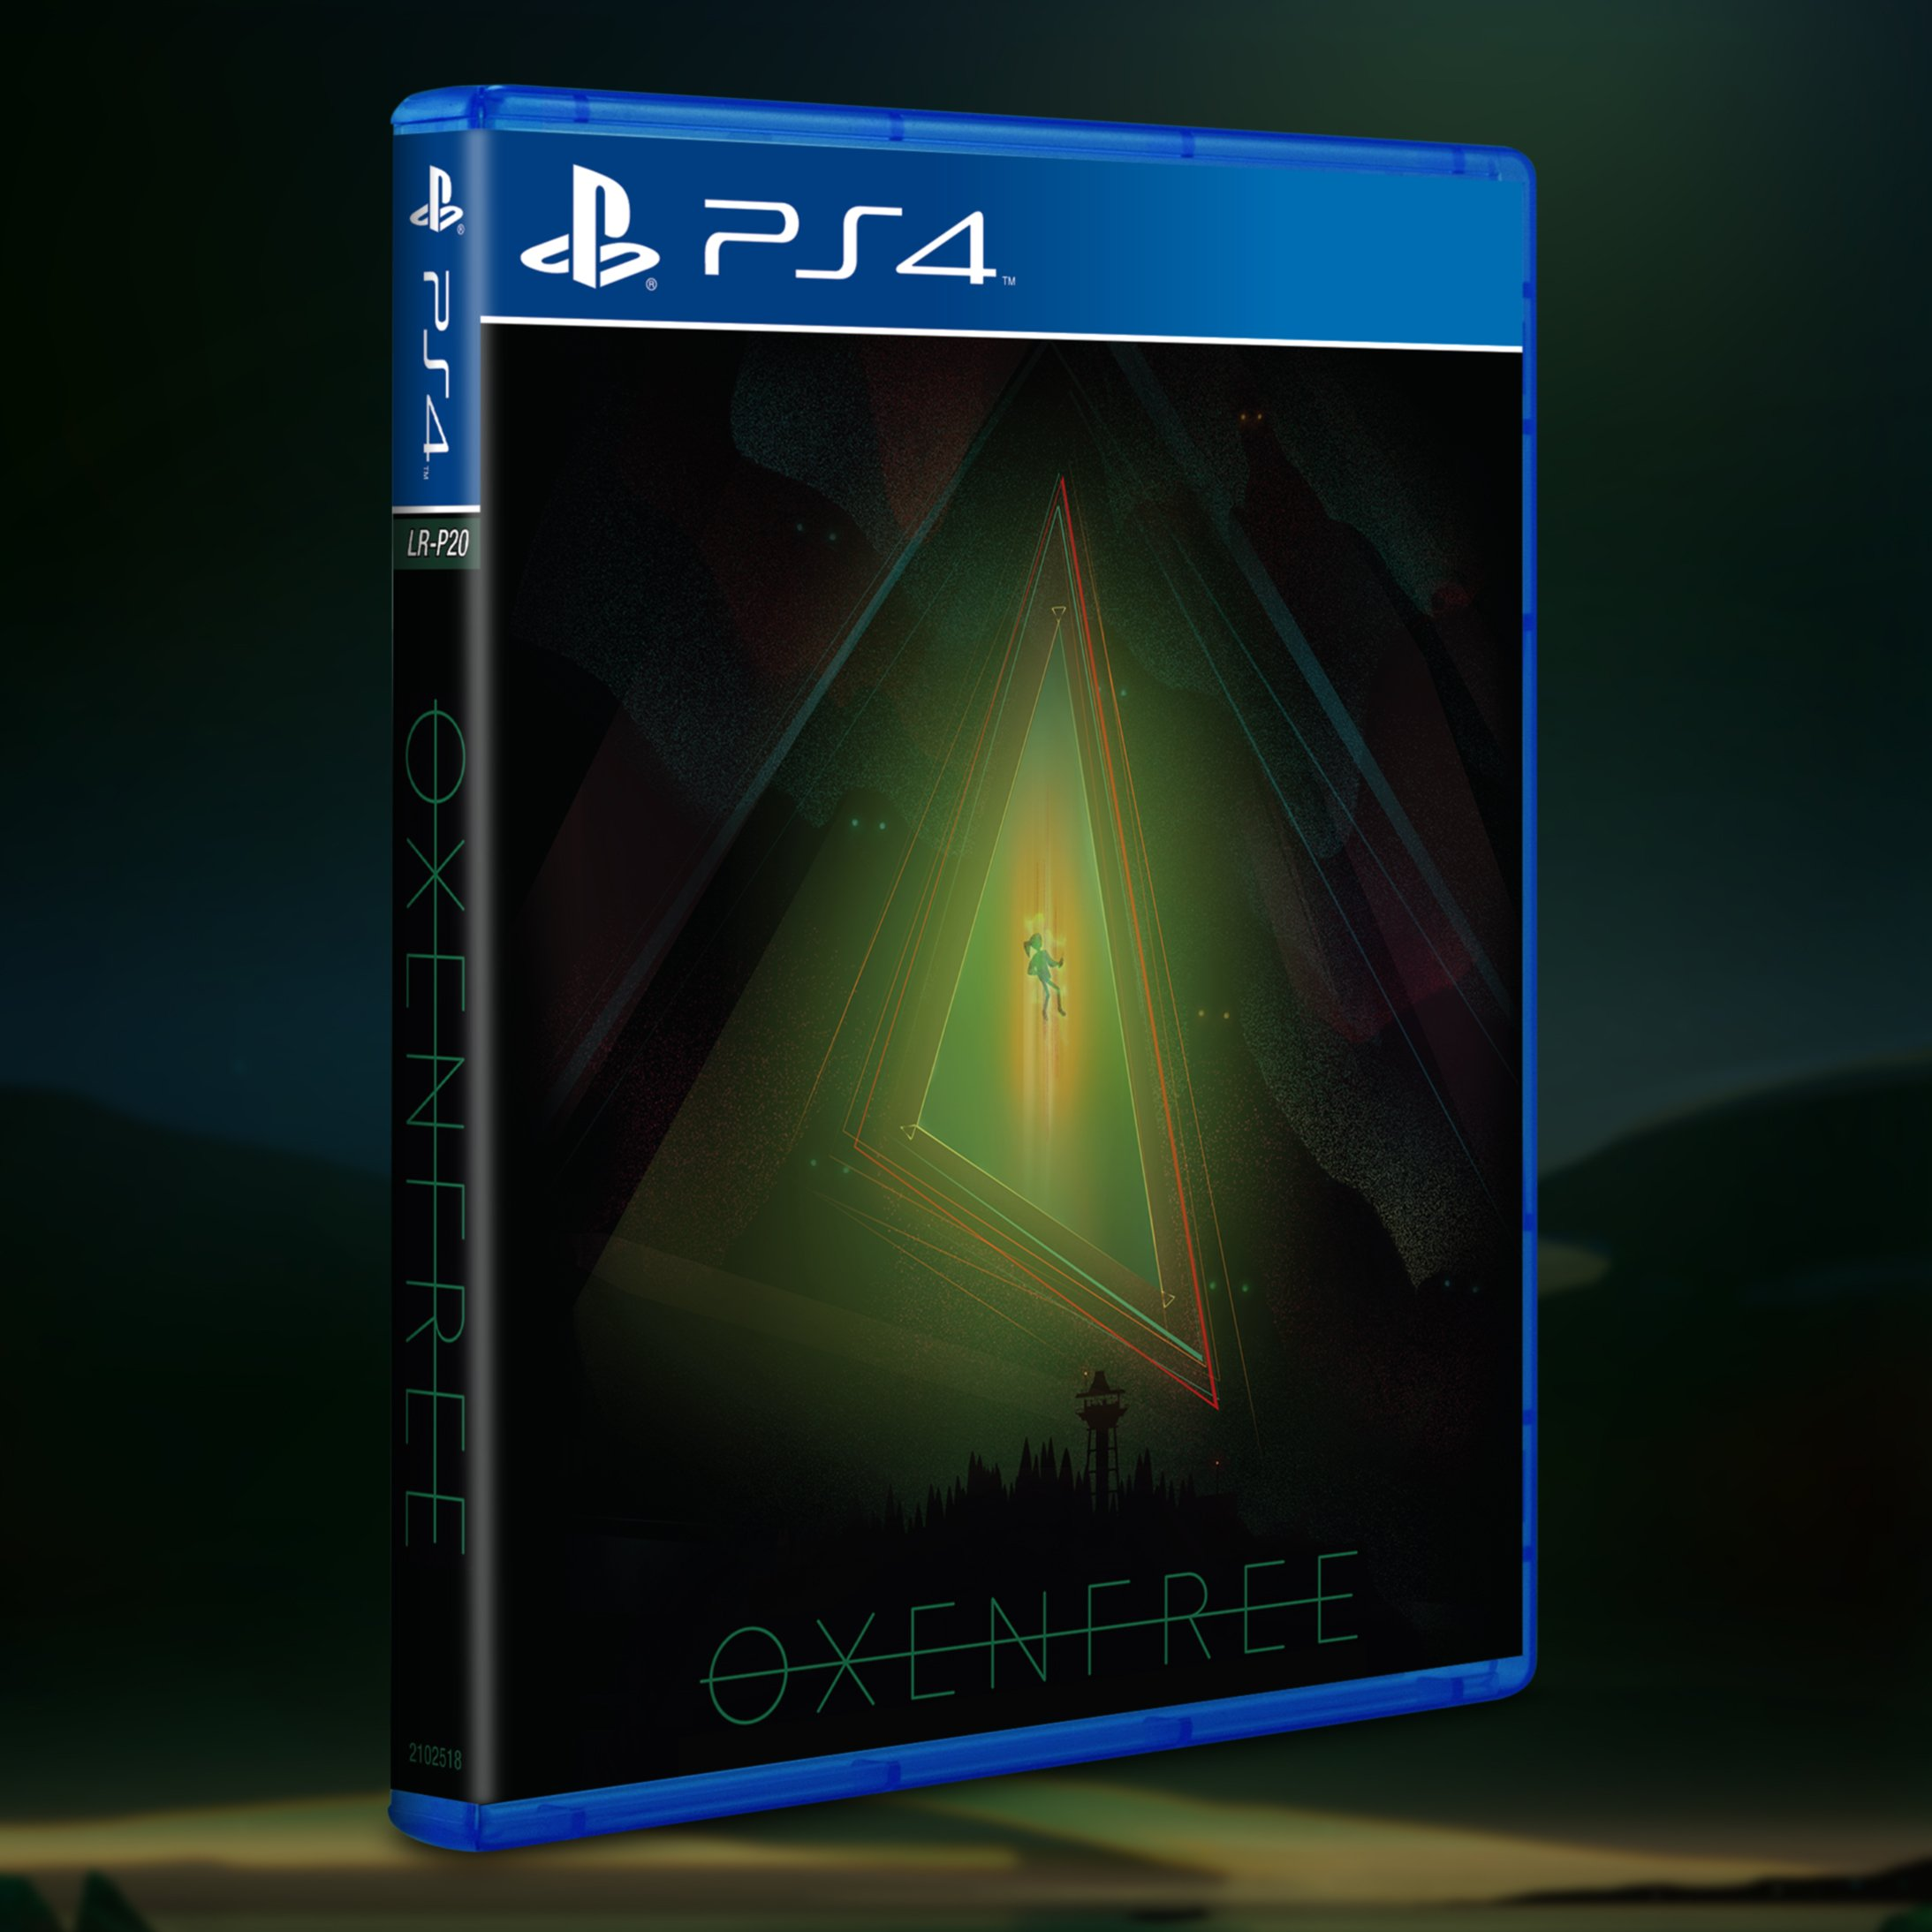 Oxenfree PS4 Limited Run Physical Edition Announced